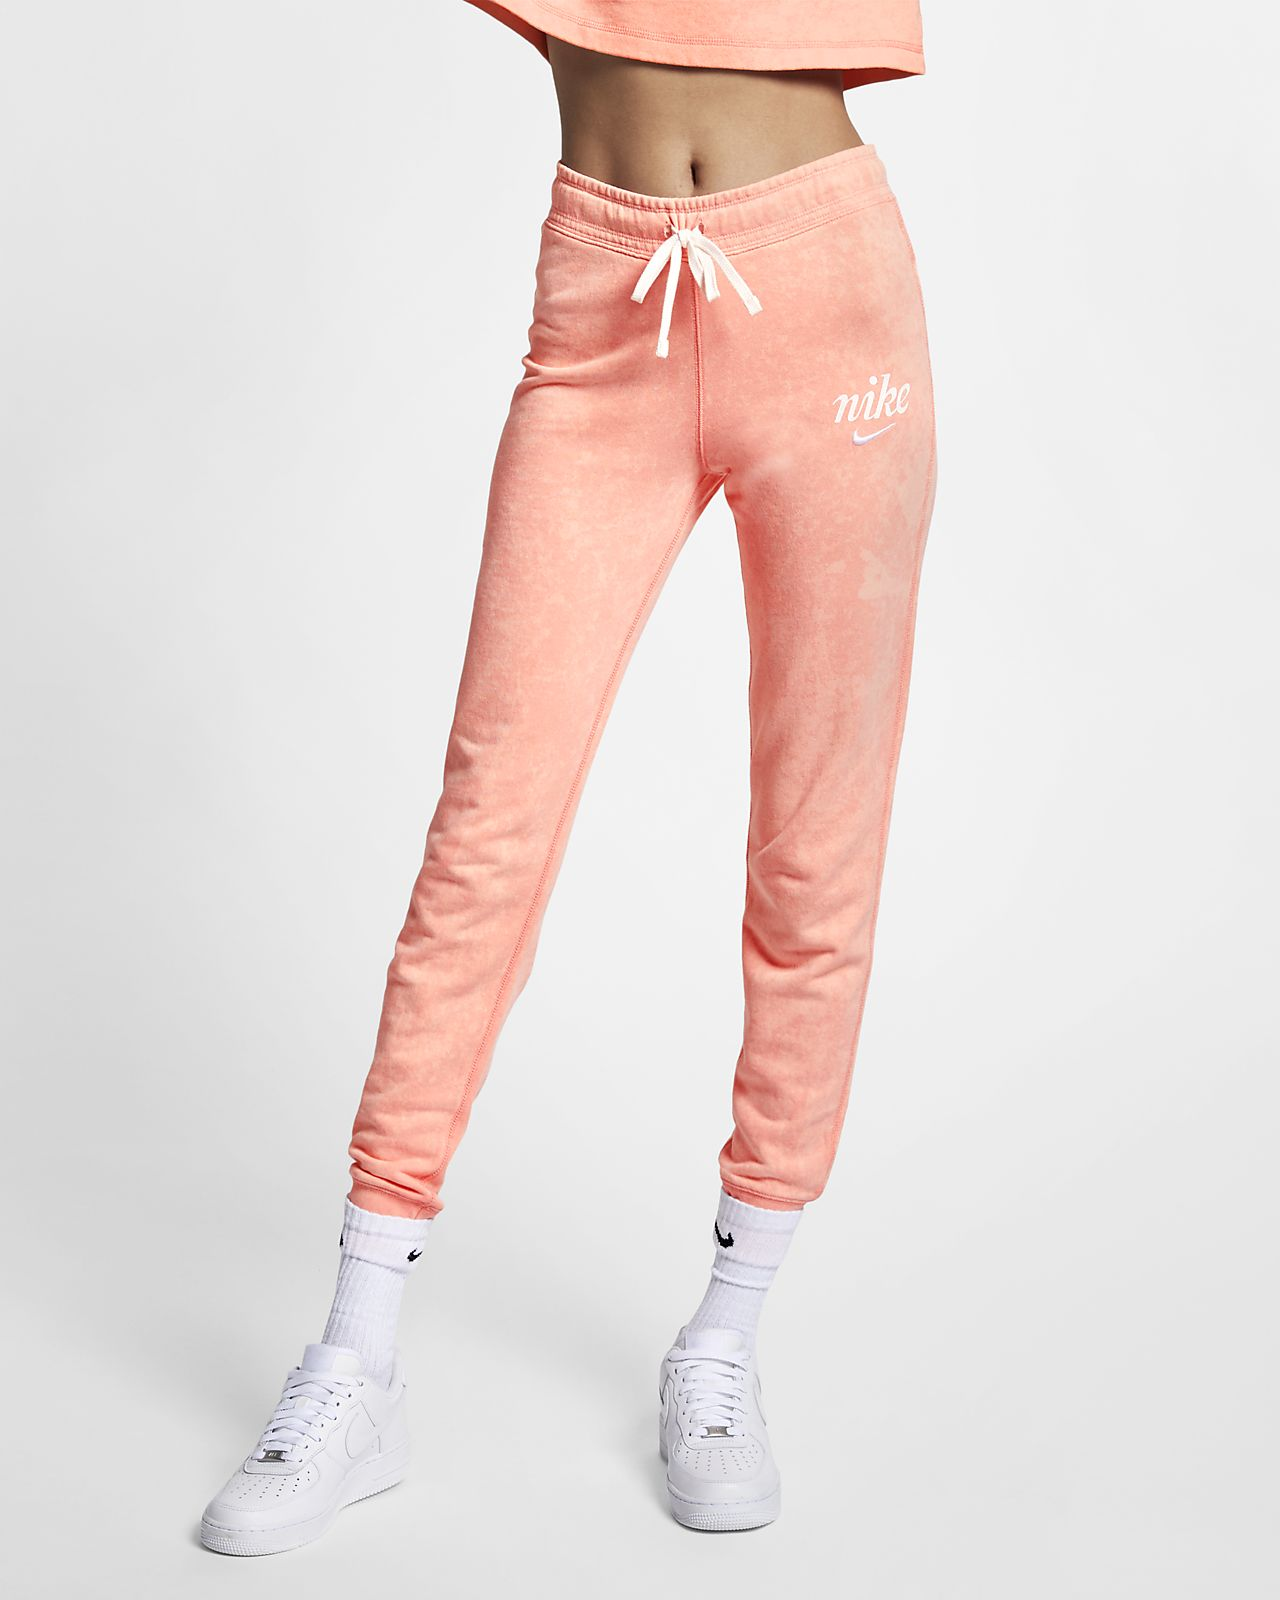 d817d2e56b28 Low Resolution Nike Sportswear Women s Trousers Nike Sportswear Women s  Trousers